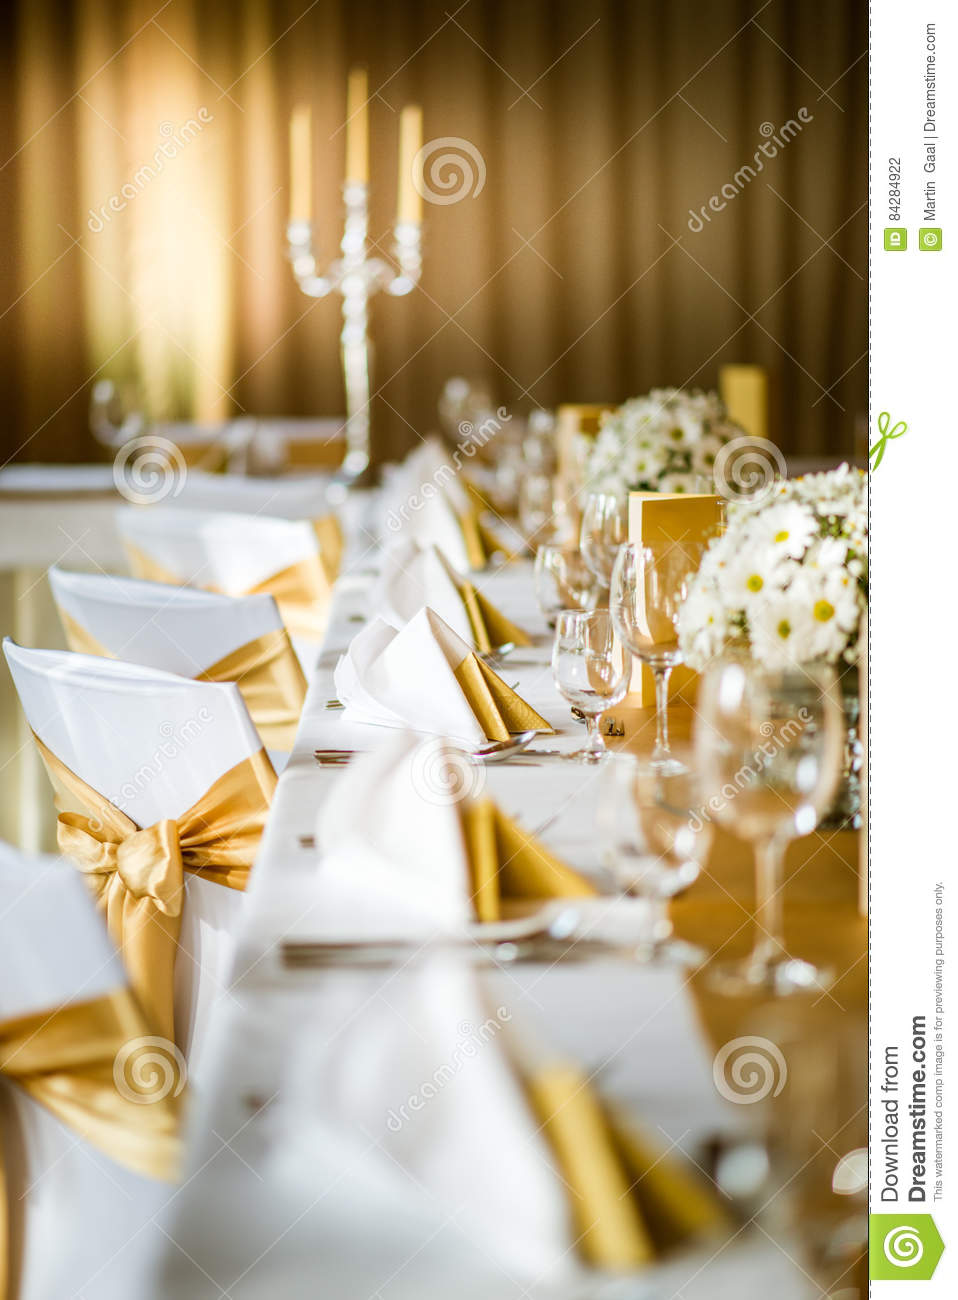 Celebration Seating On Wedding Table Decorations With Flowers For